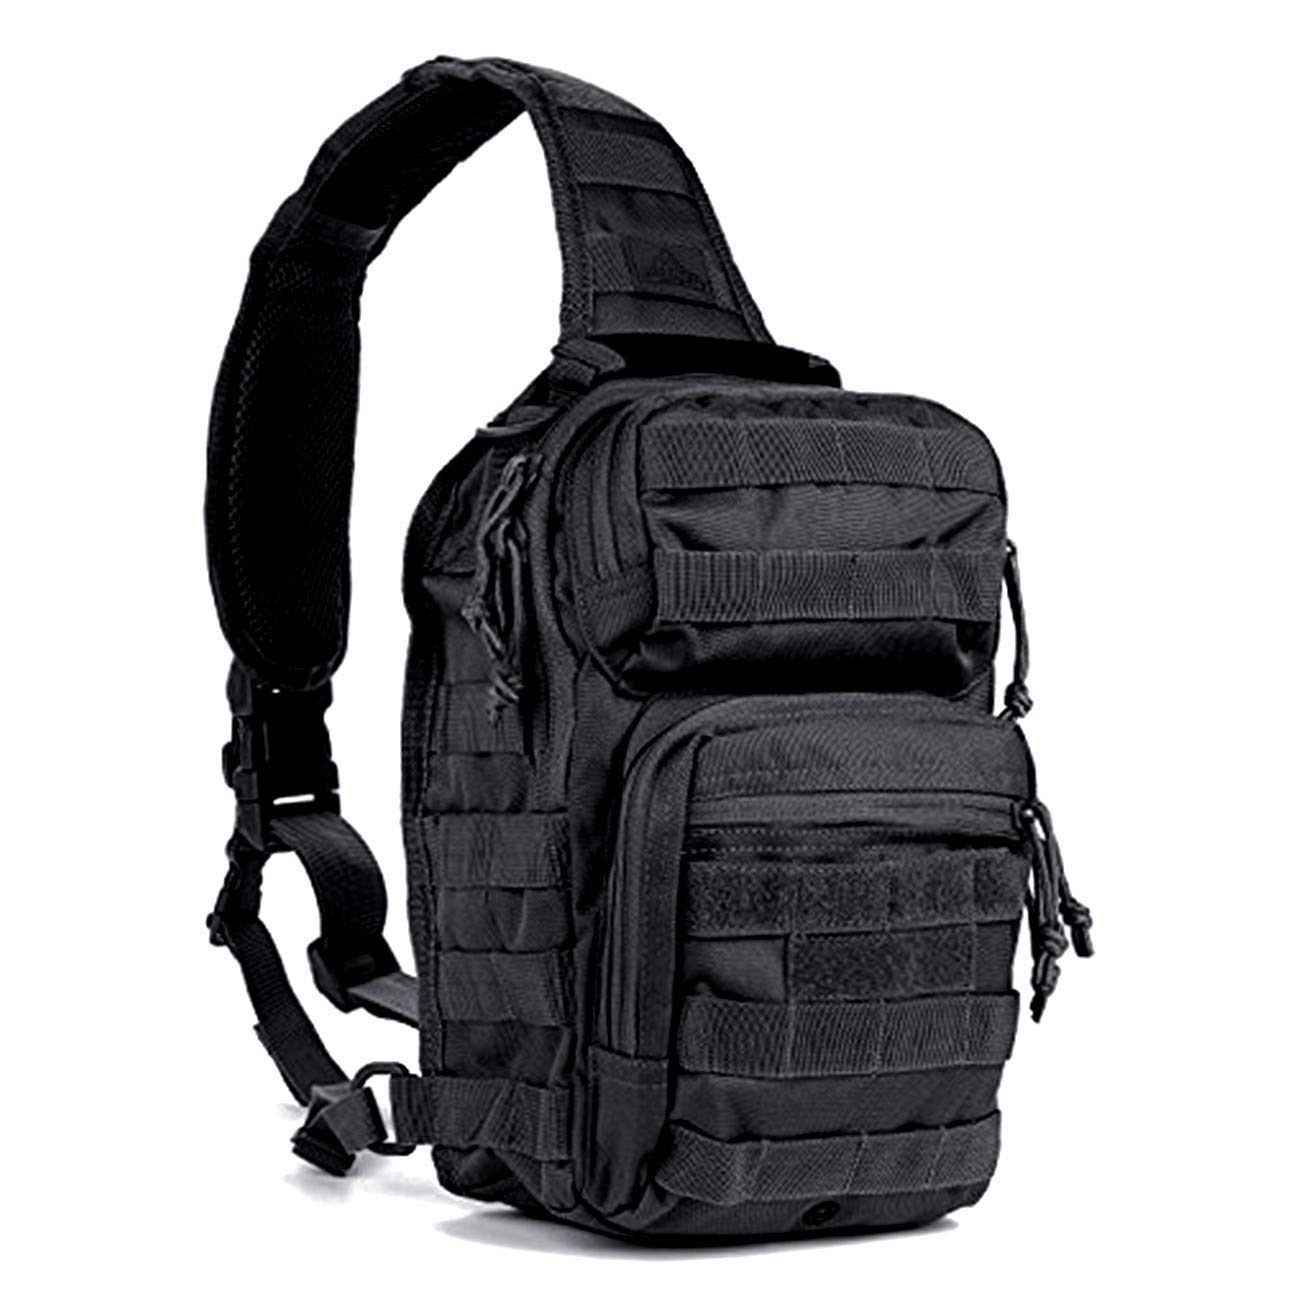 Camping & Hiking Unisex Military Tactical Chest Pack Nylon Cross Body Sling Single Shoulder Bag Fishing Camping Equipment Selling Well All Over The World Climbing Bags